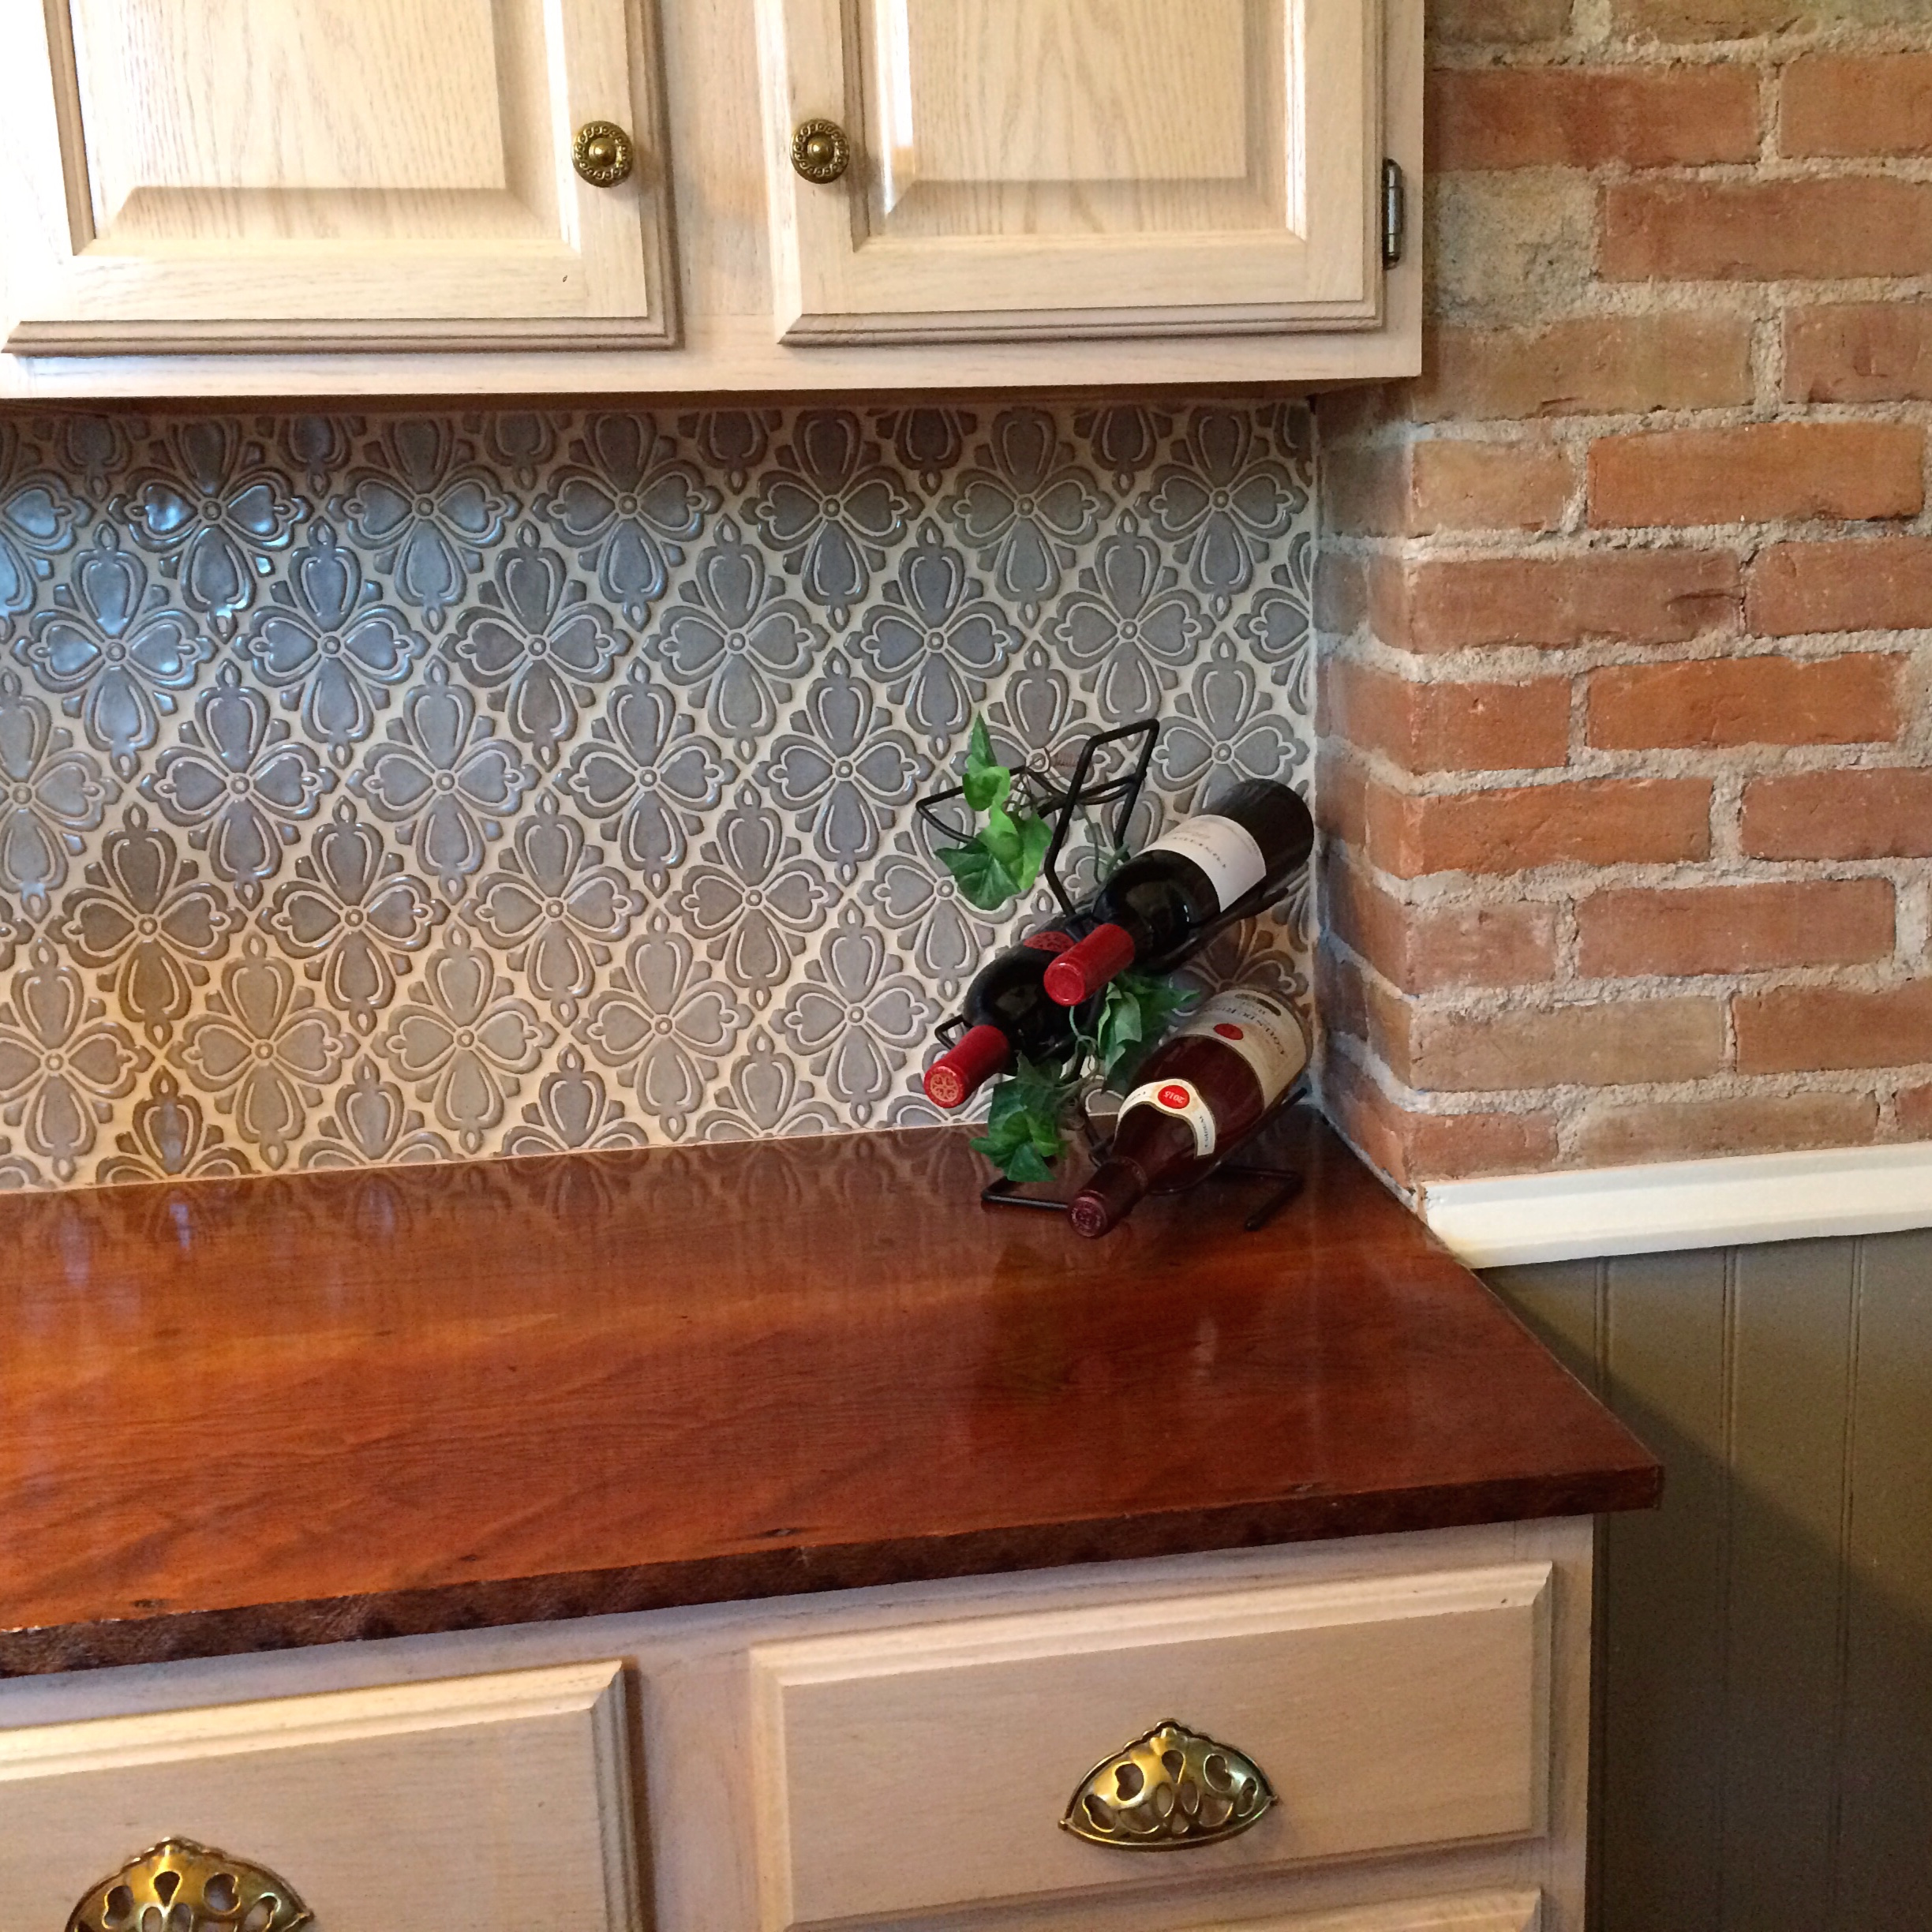 Wood Tile Kitchen Backsplash: Our Top 7 Kitchen Backsplashes